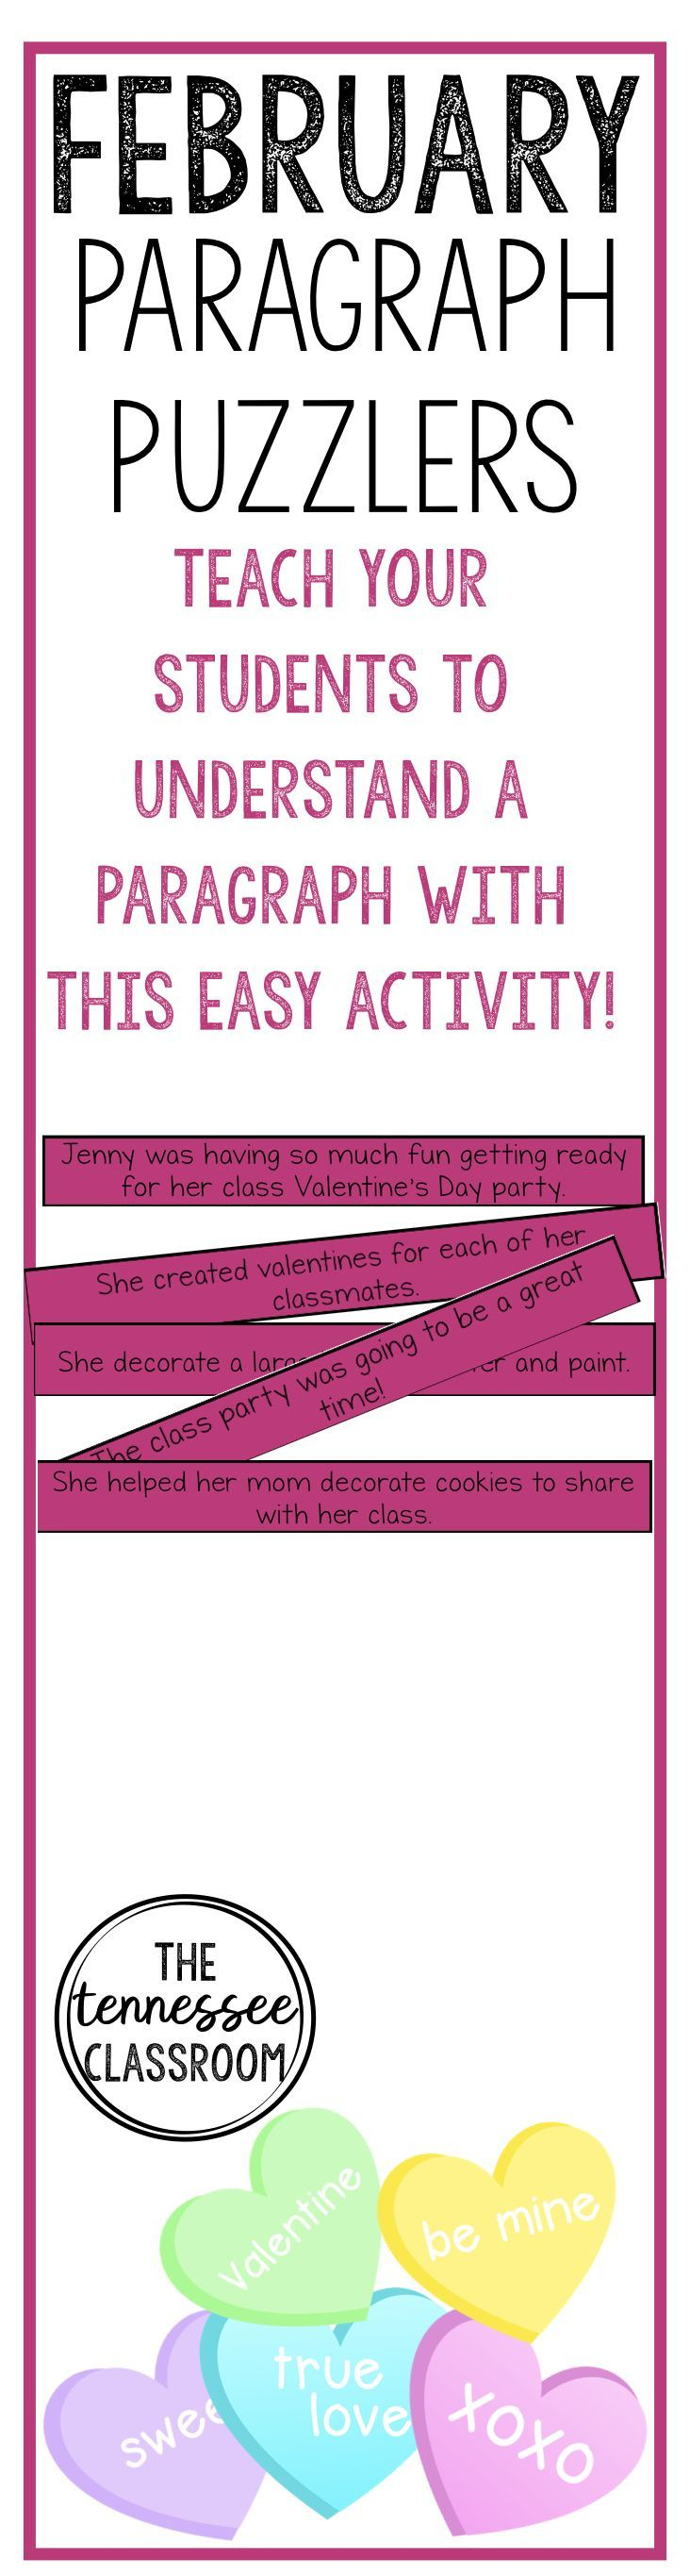 February writing activity paragraph puzzlers teaching